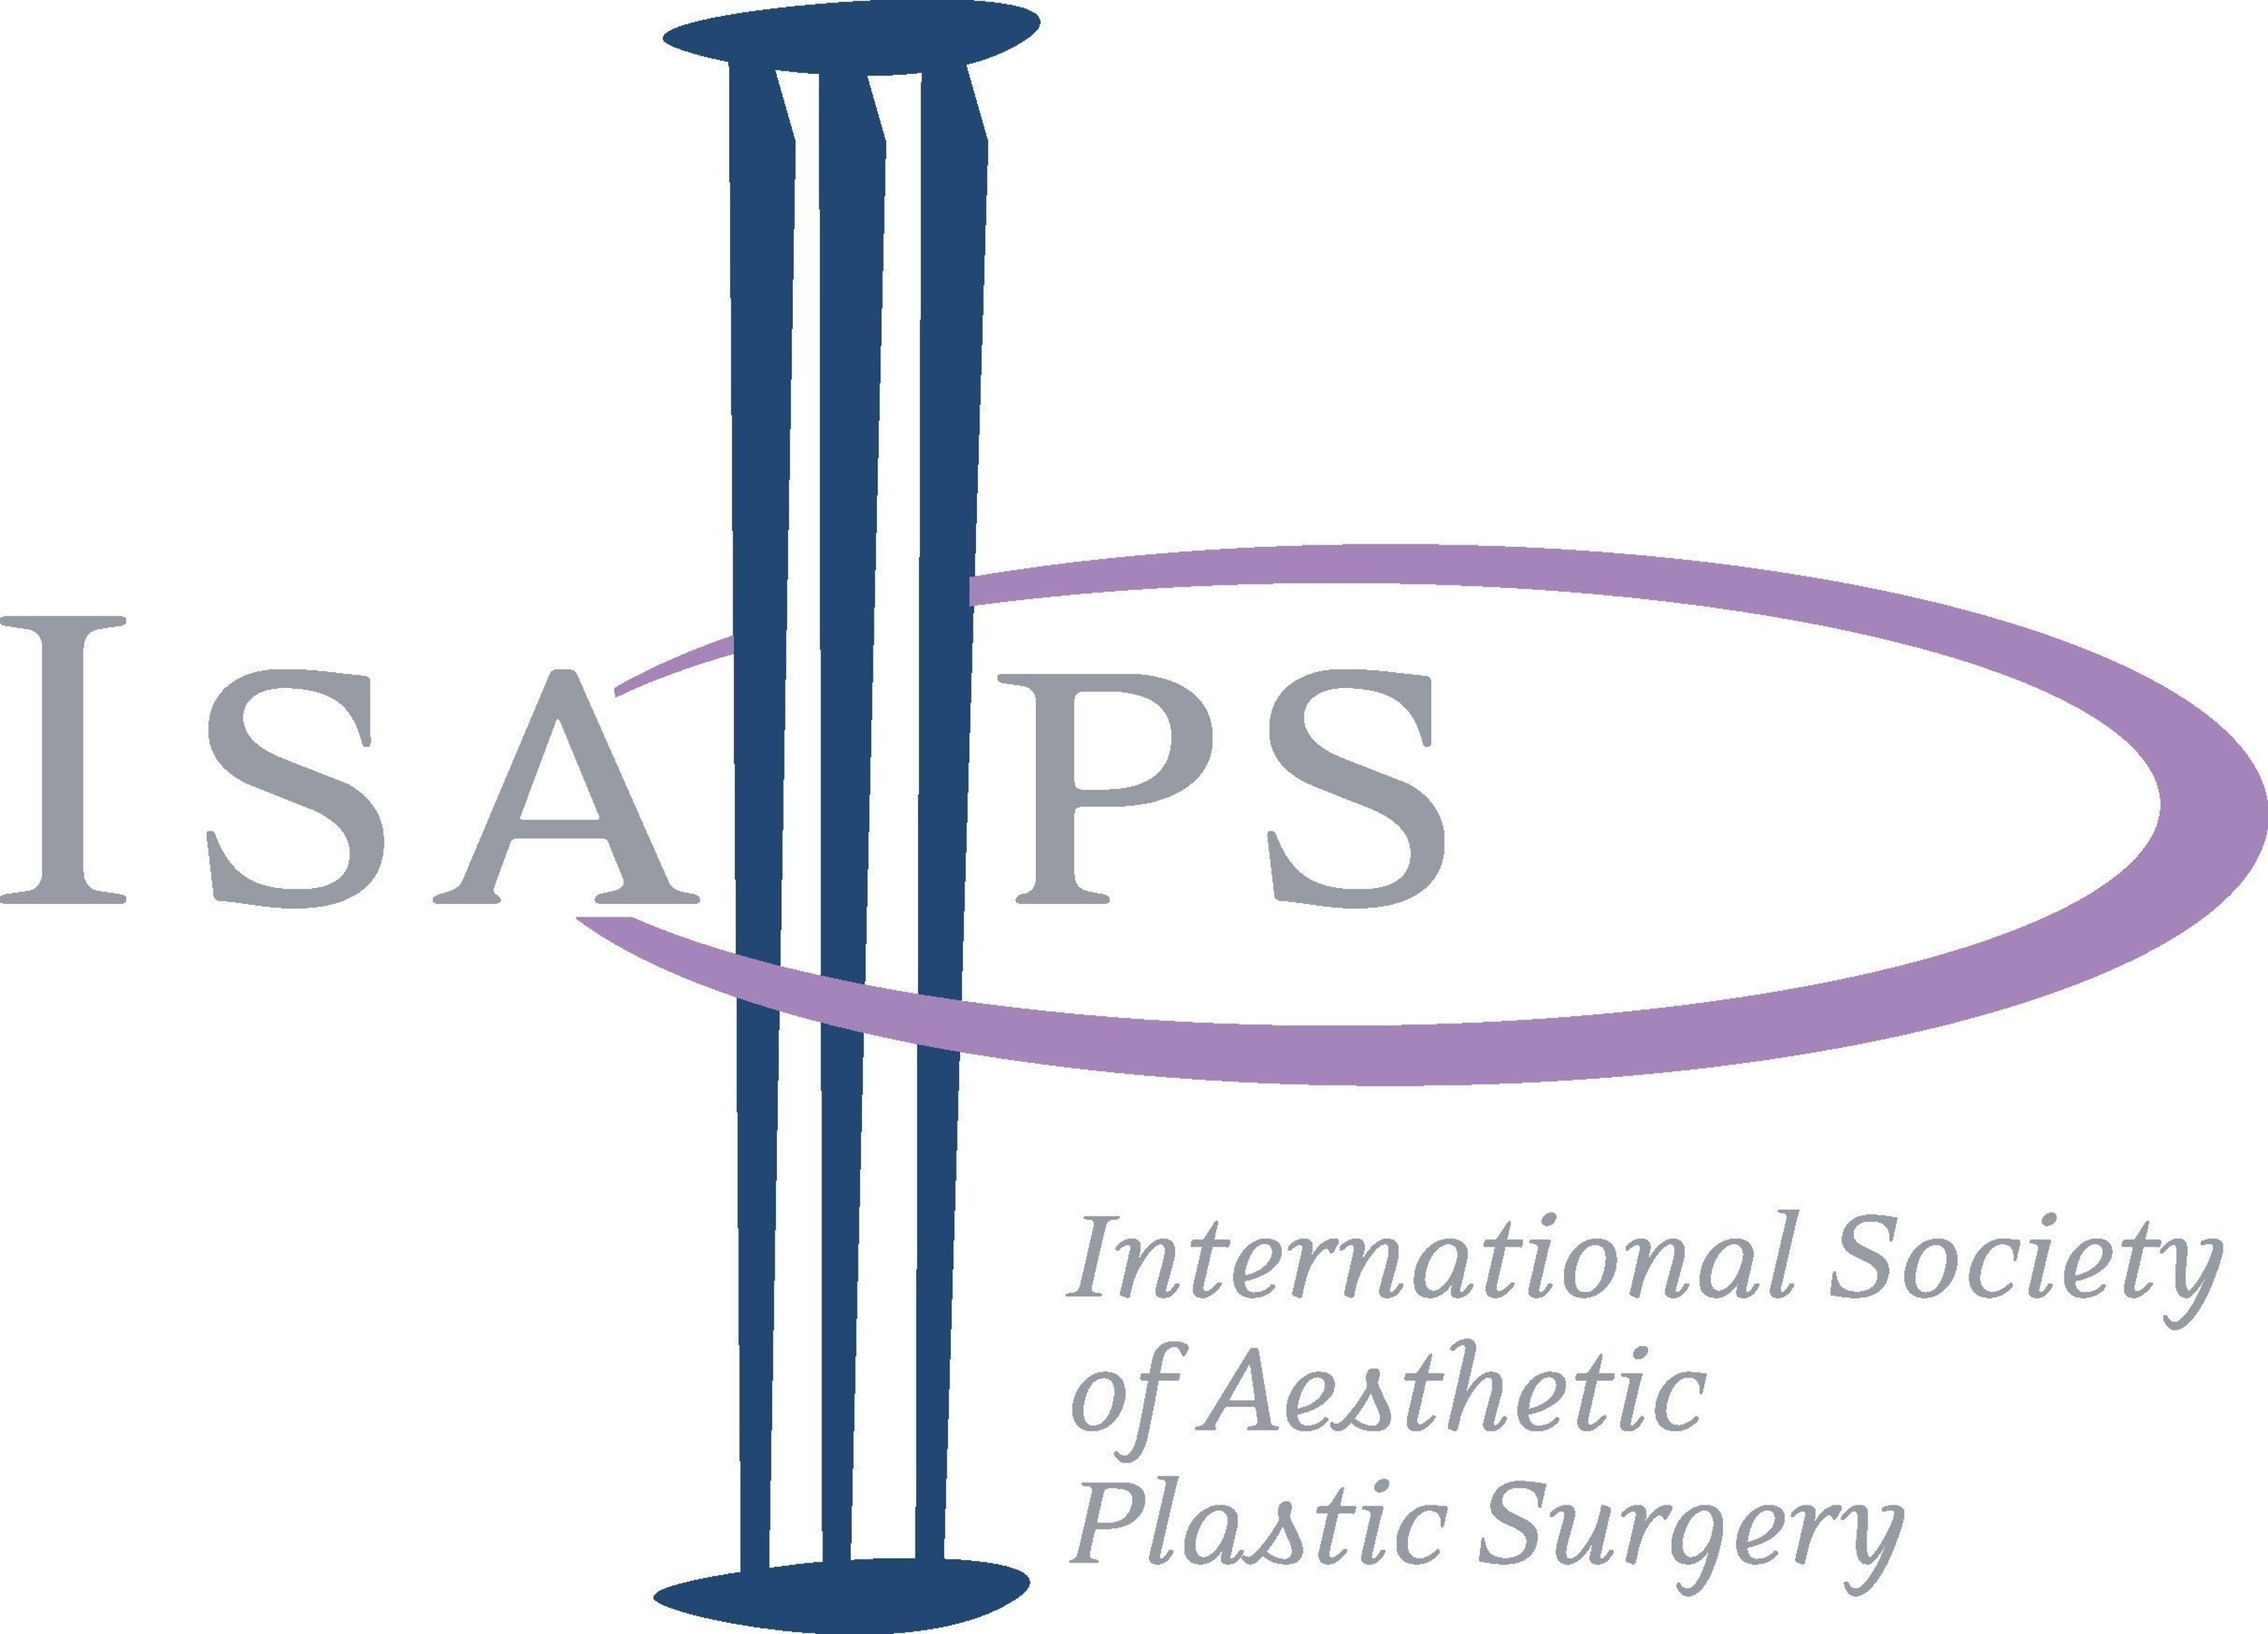 The International Society of Aesthetic Plastic Surgery komt met wereldwijde statistieken over